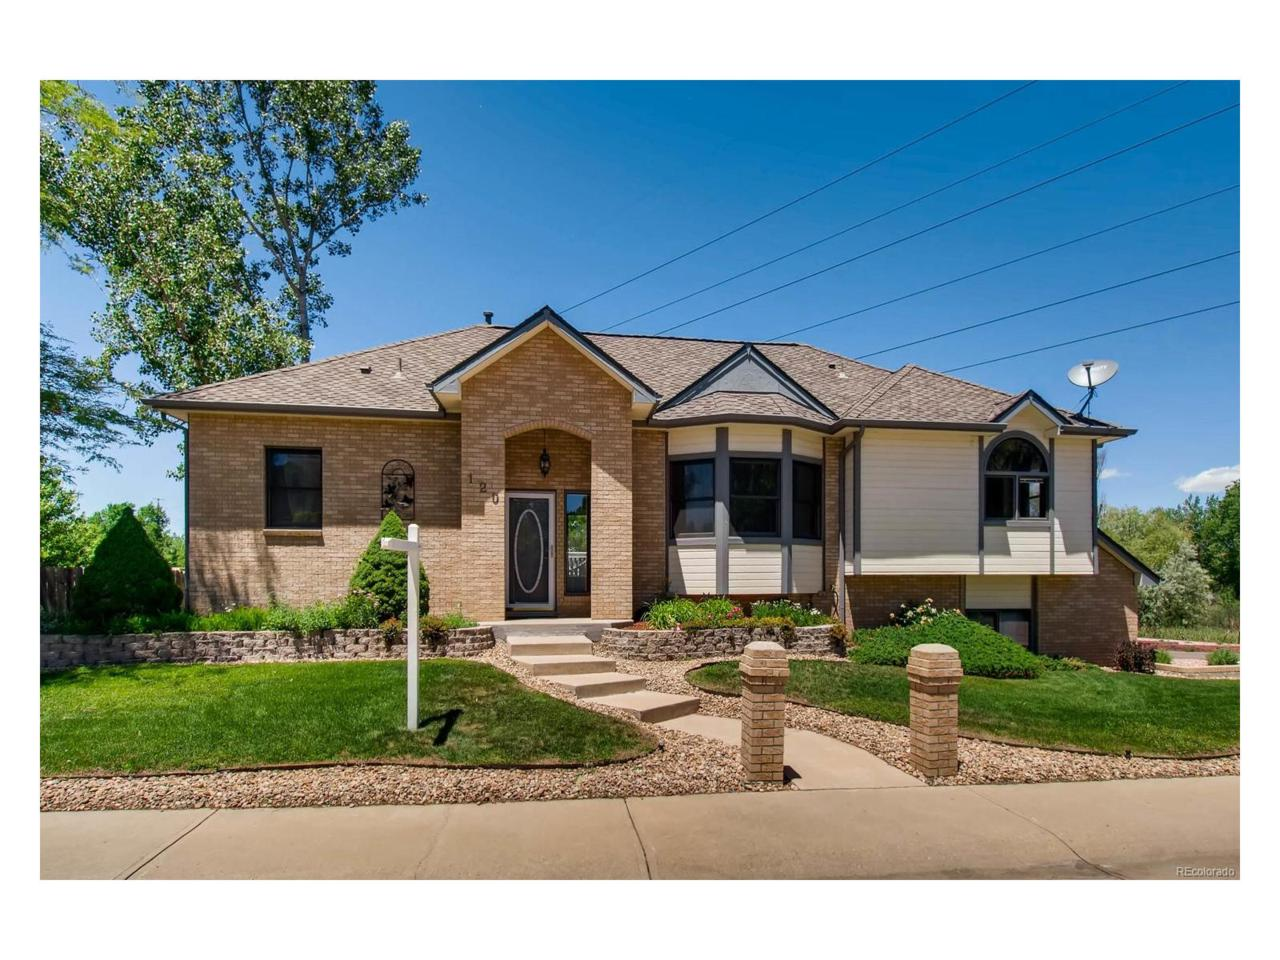 120 W Hill Court, Fort Lupton, CO 80621 (MLS #7596611) :: 8z Real Estate